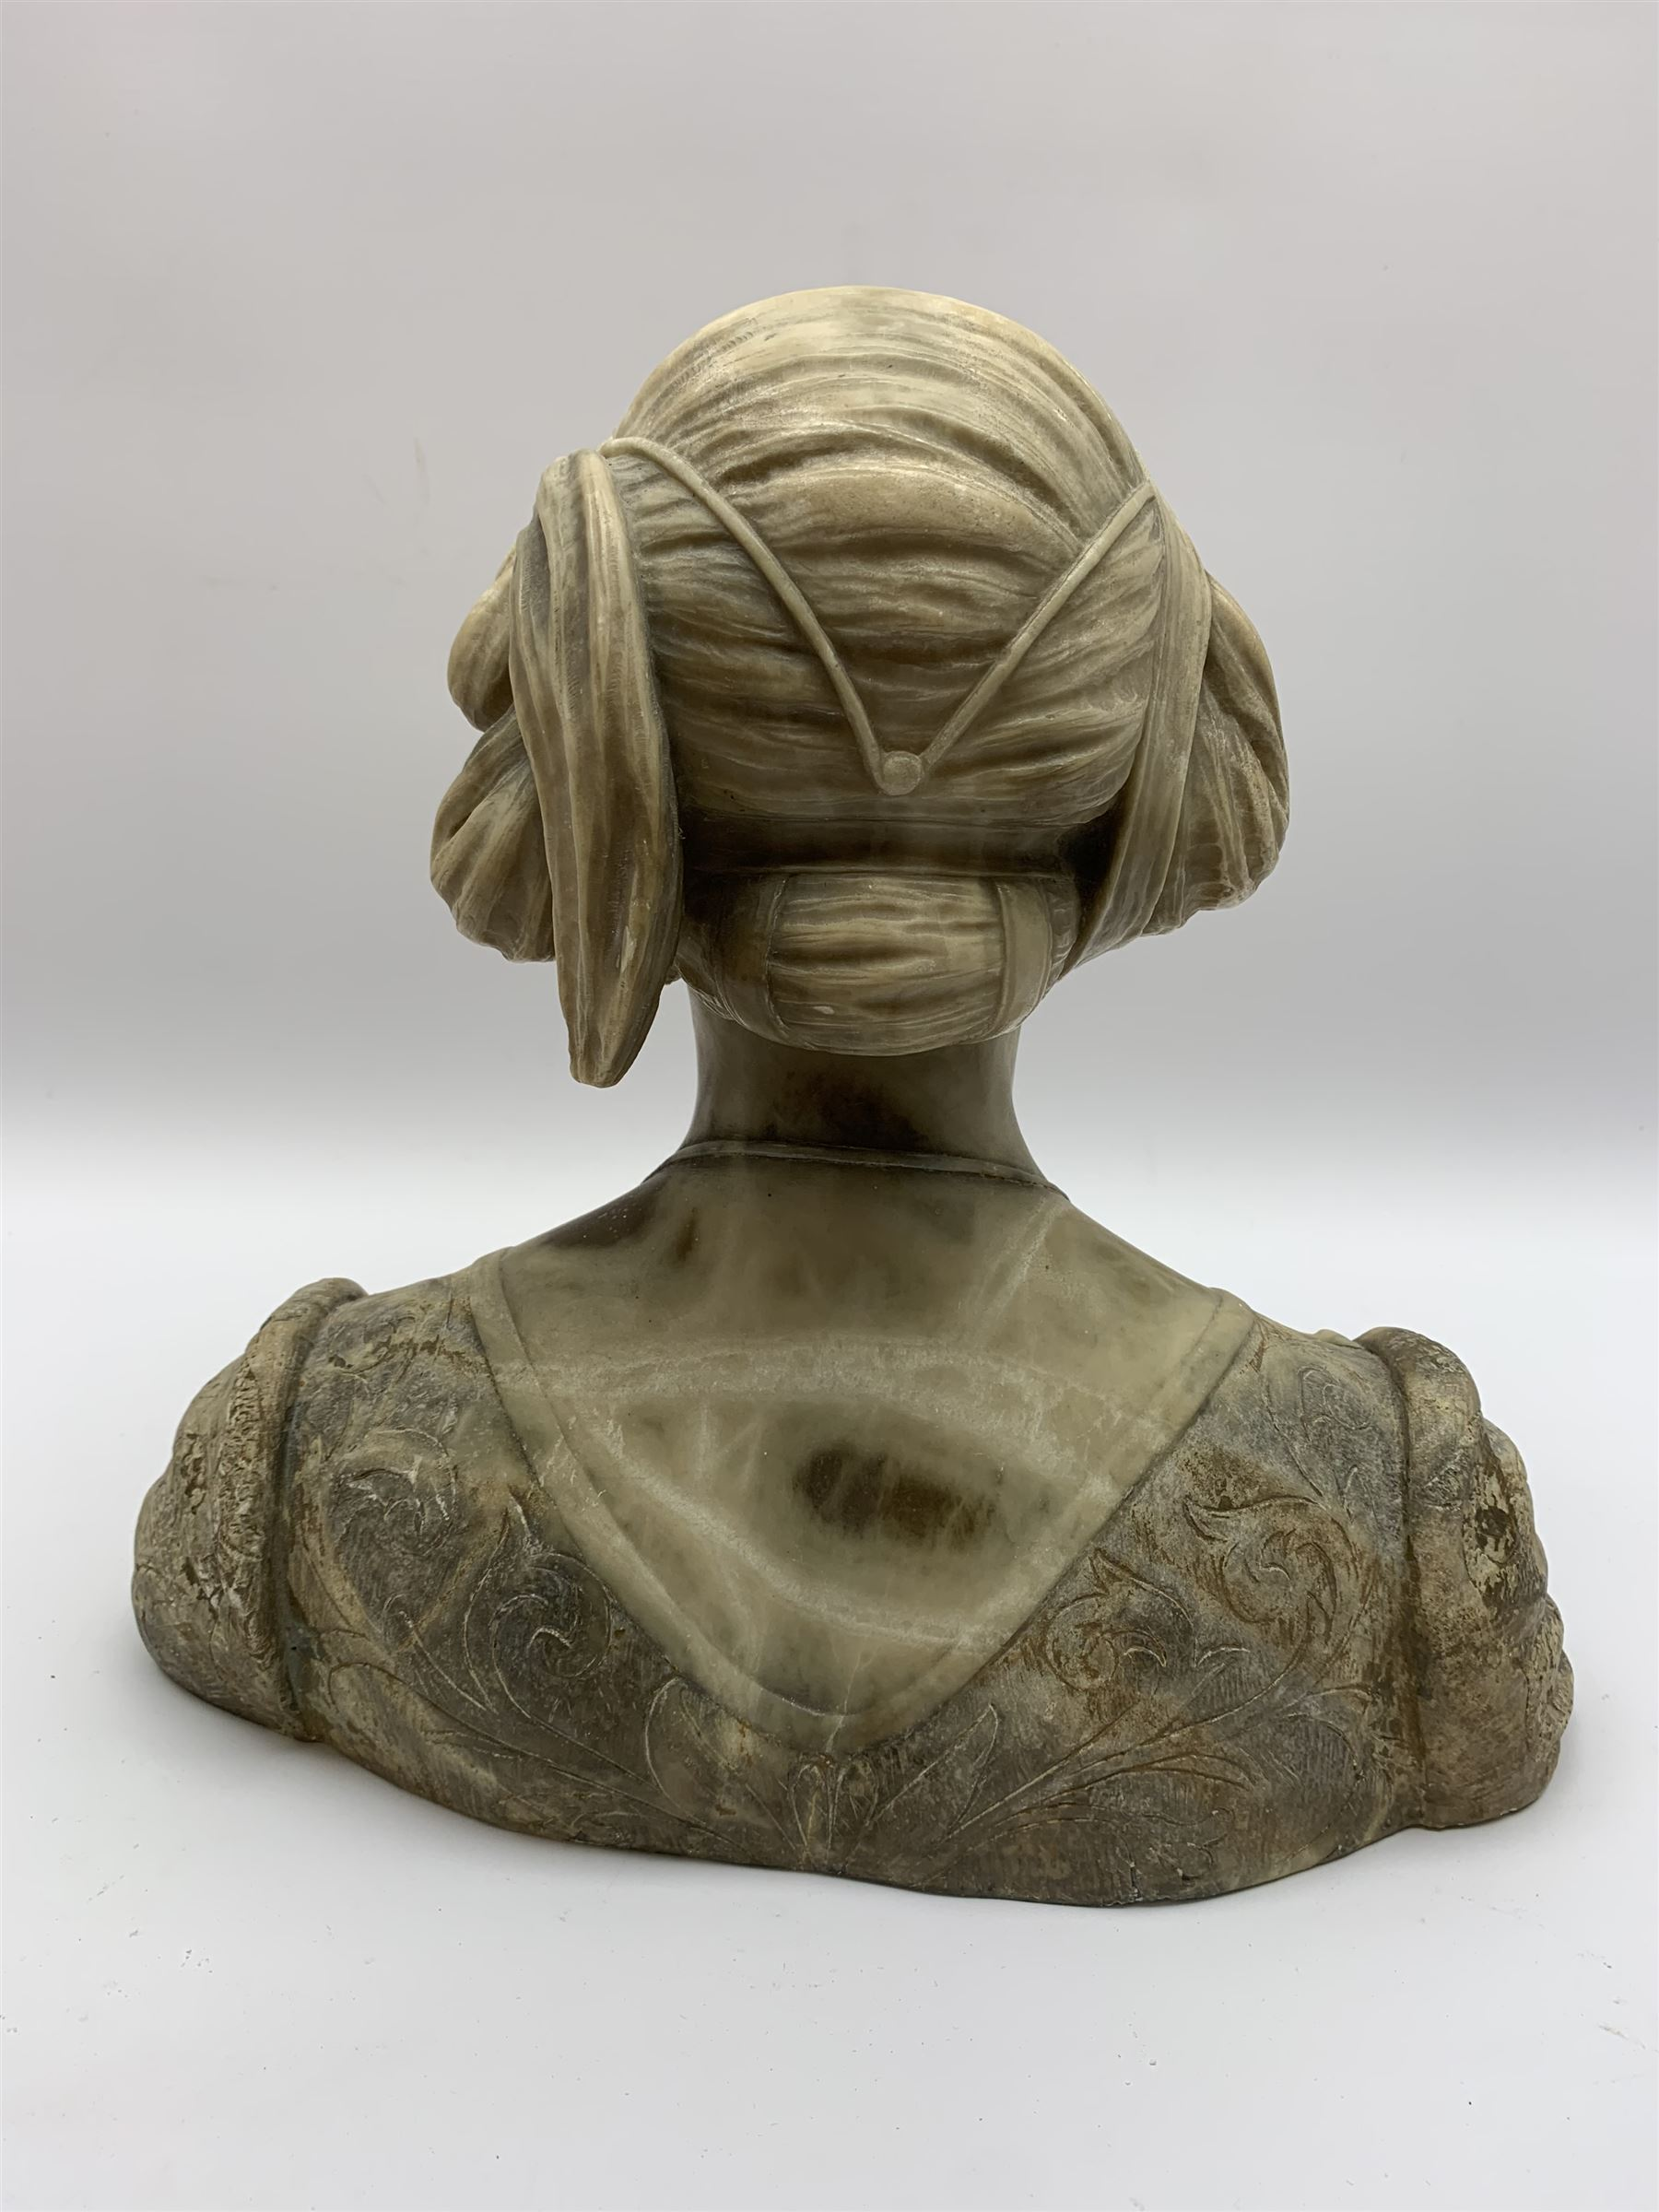 Carved marble bust modelled as a female figure - Image 6 of 10